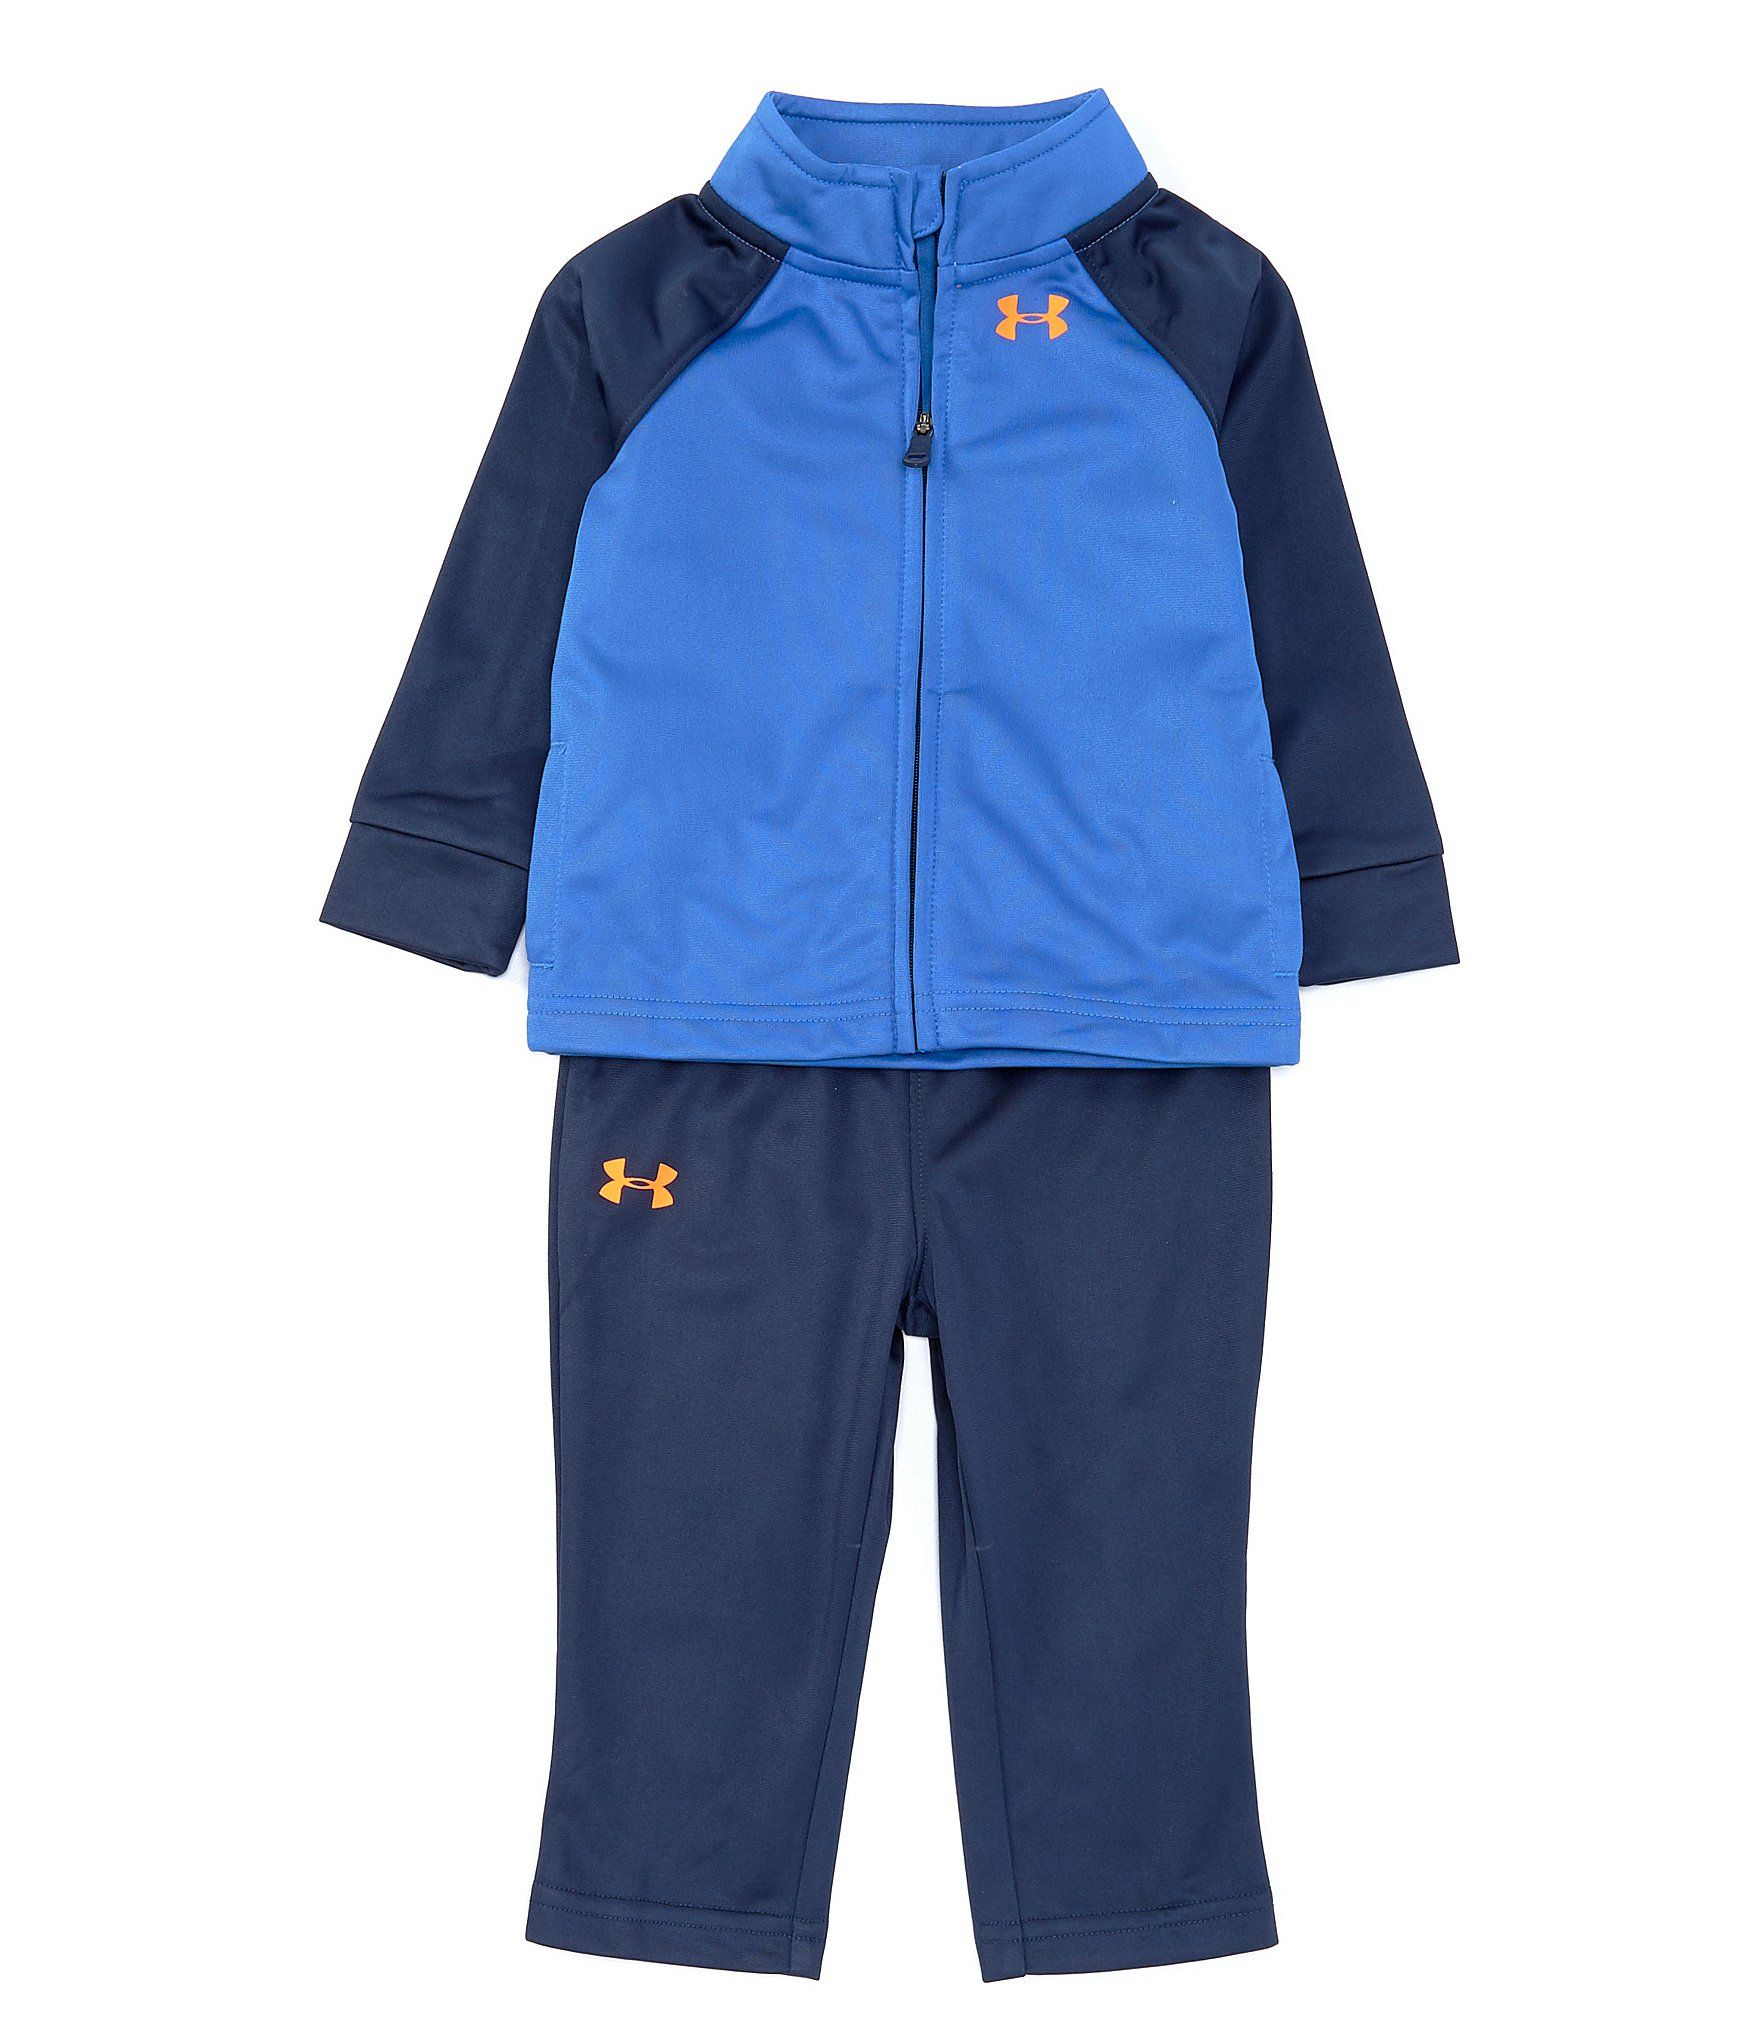 Under Armour Baby Girls Toddler Track Jacket and Pant Set